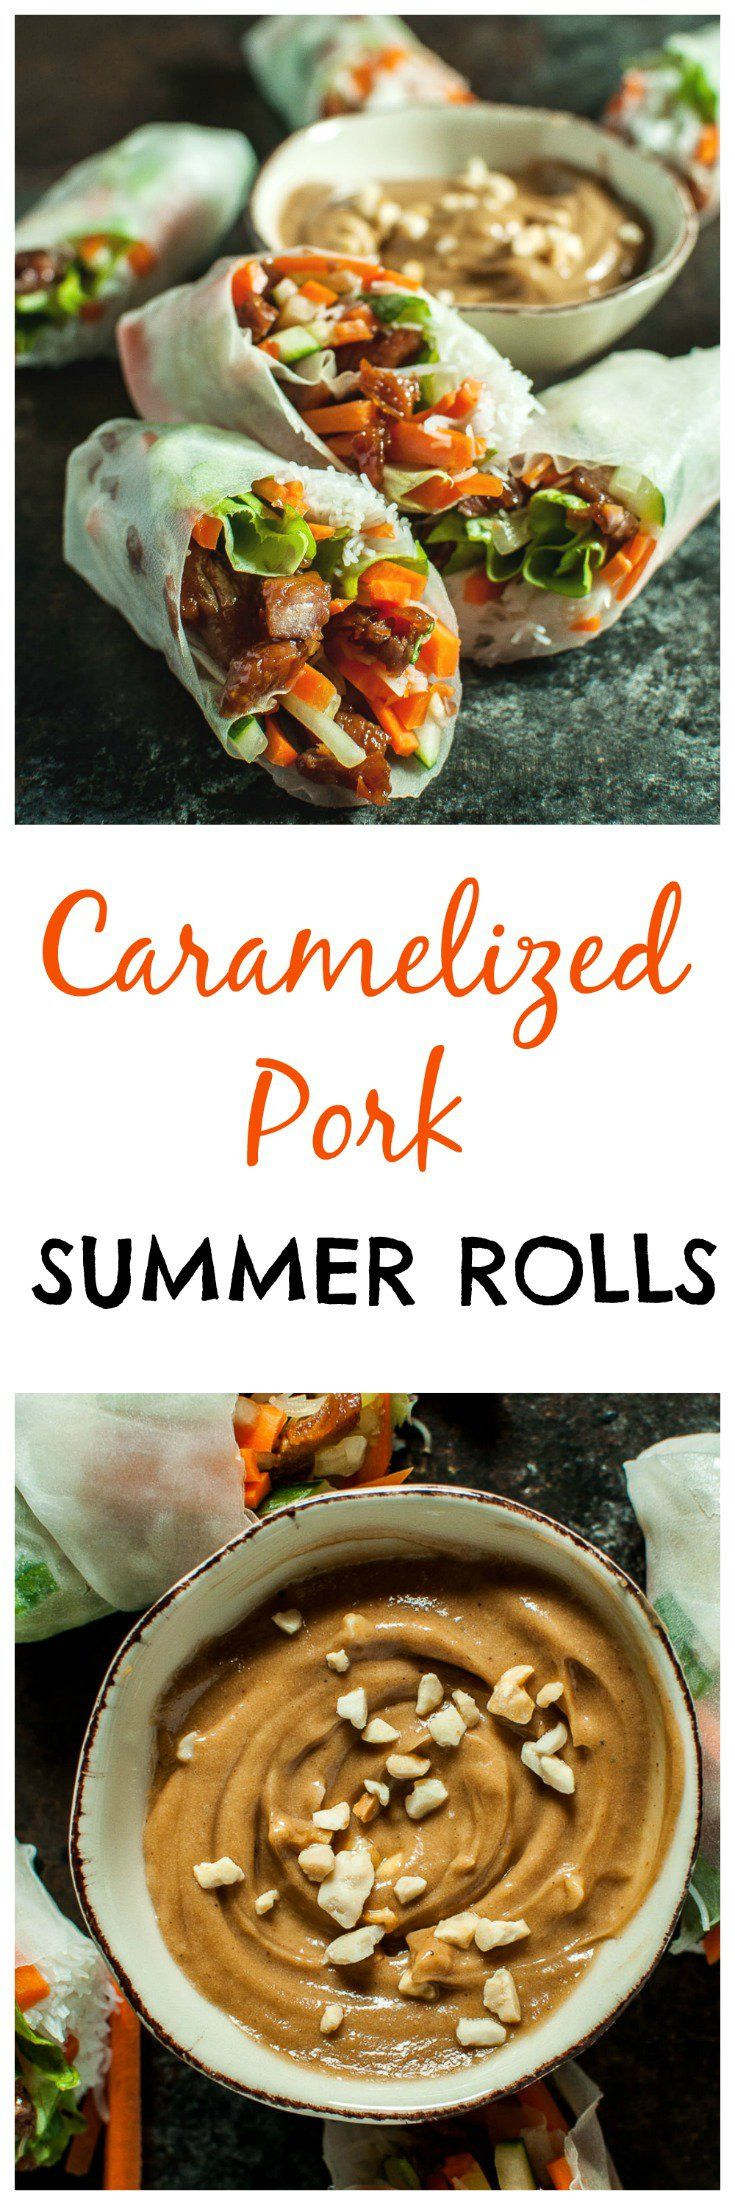 Sticky-sweet caramelized pork is complemented by crisp lettuce, carrots, and cucumber and wrapped in rice paper with vermicelli. The creamy peanut sauce makes the perfect dip for these fresh summer rolls.